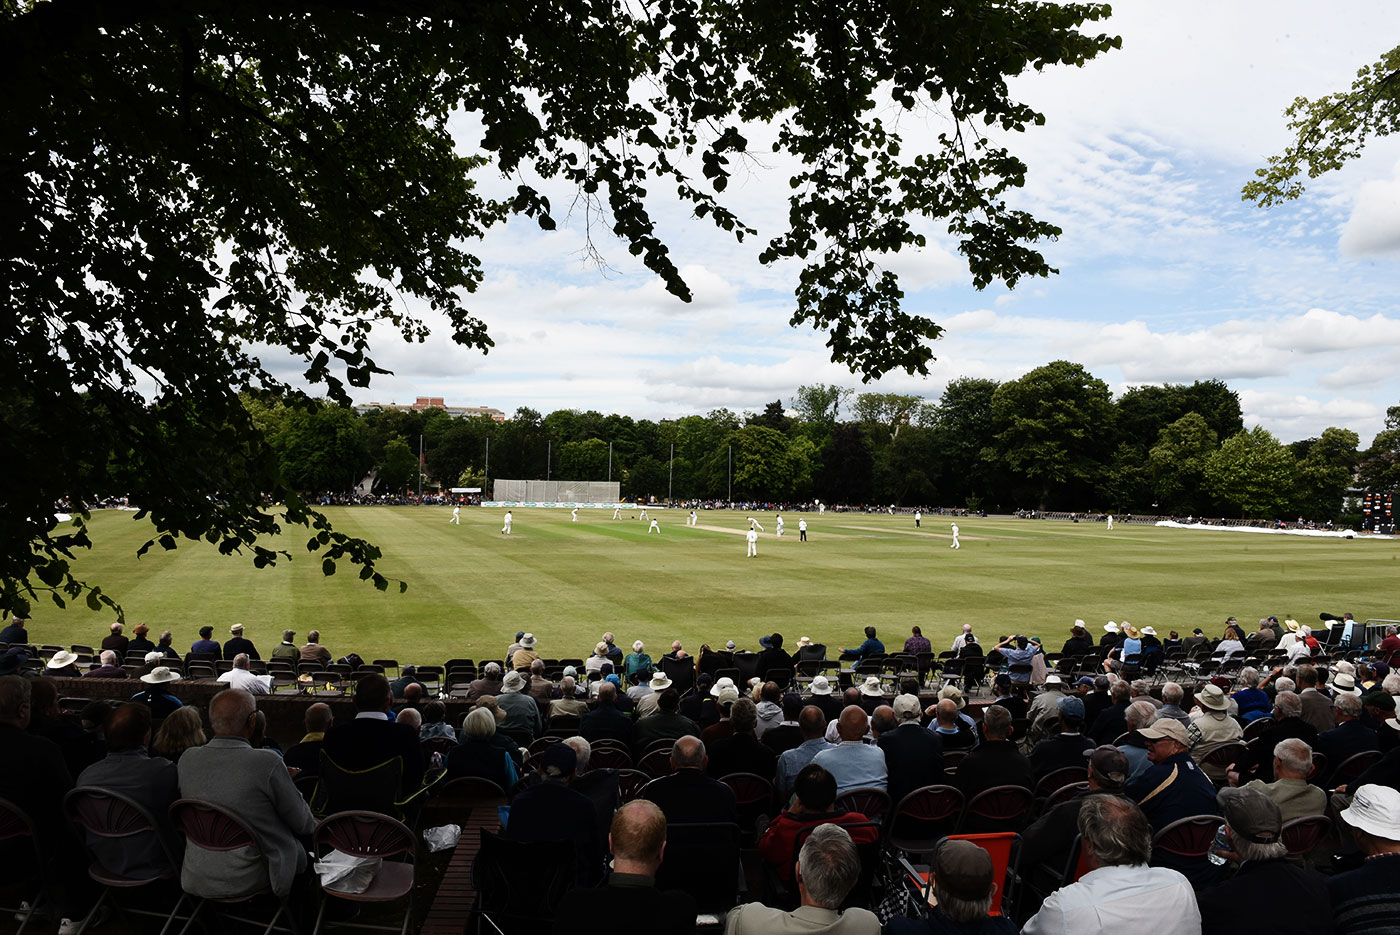 Queen's Park: some cricket, a picnic, and possibly a nap in the shade?